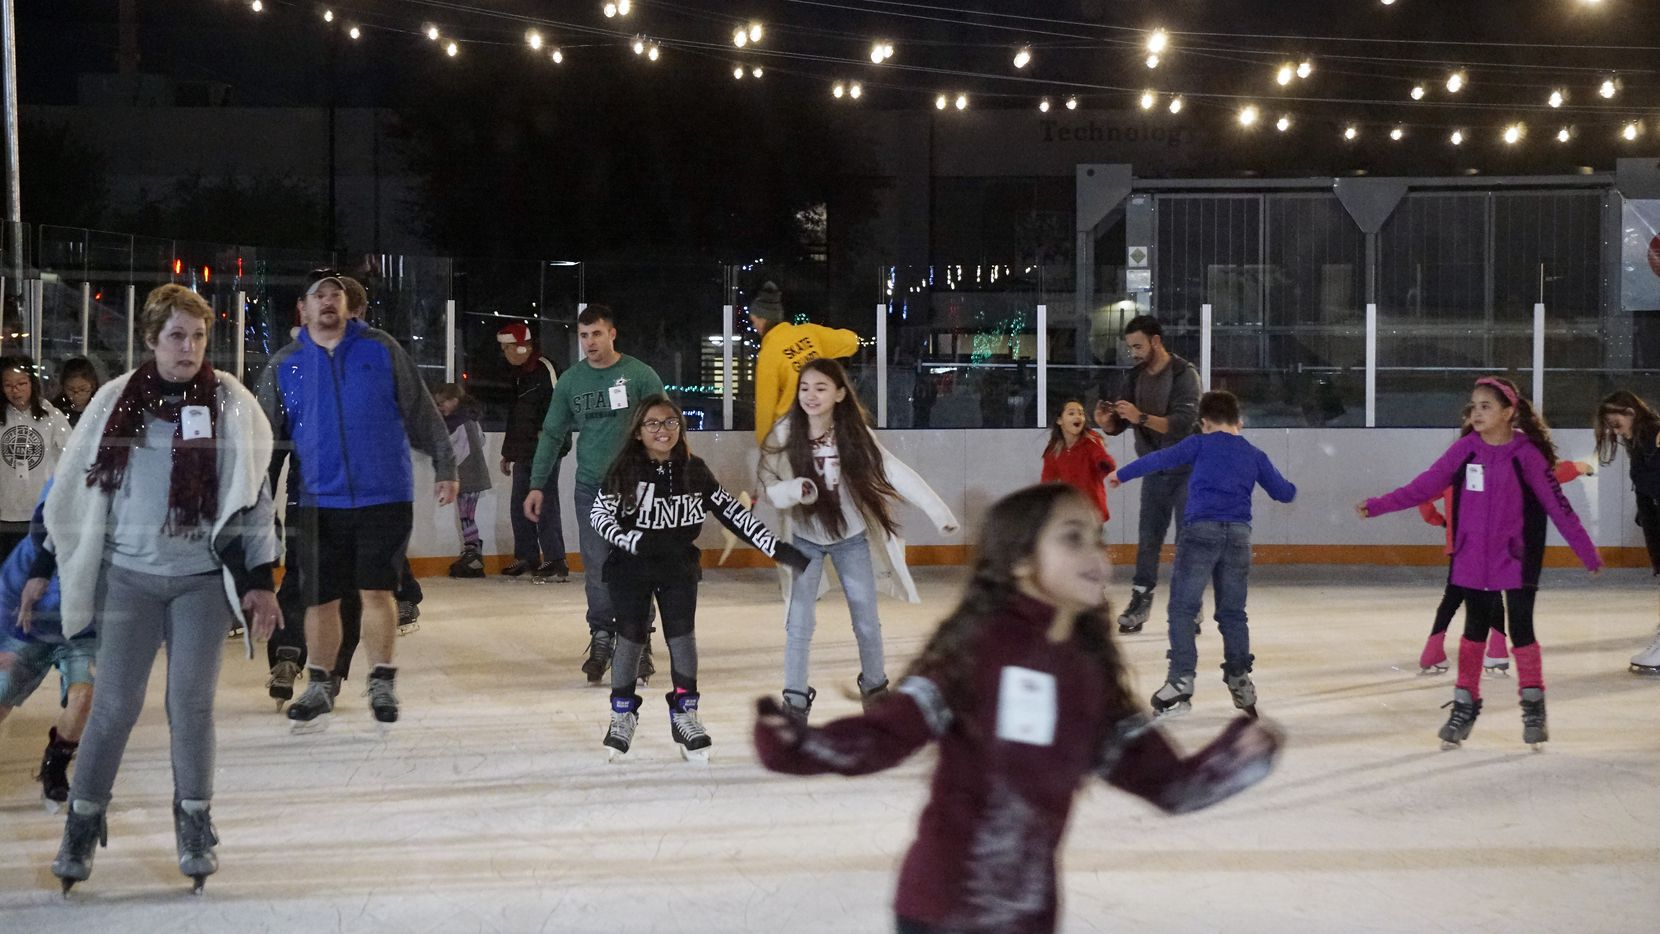 The ice skating rink was busy at Christmas in the Branch in Farmers Branch.